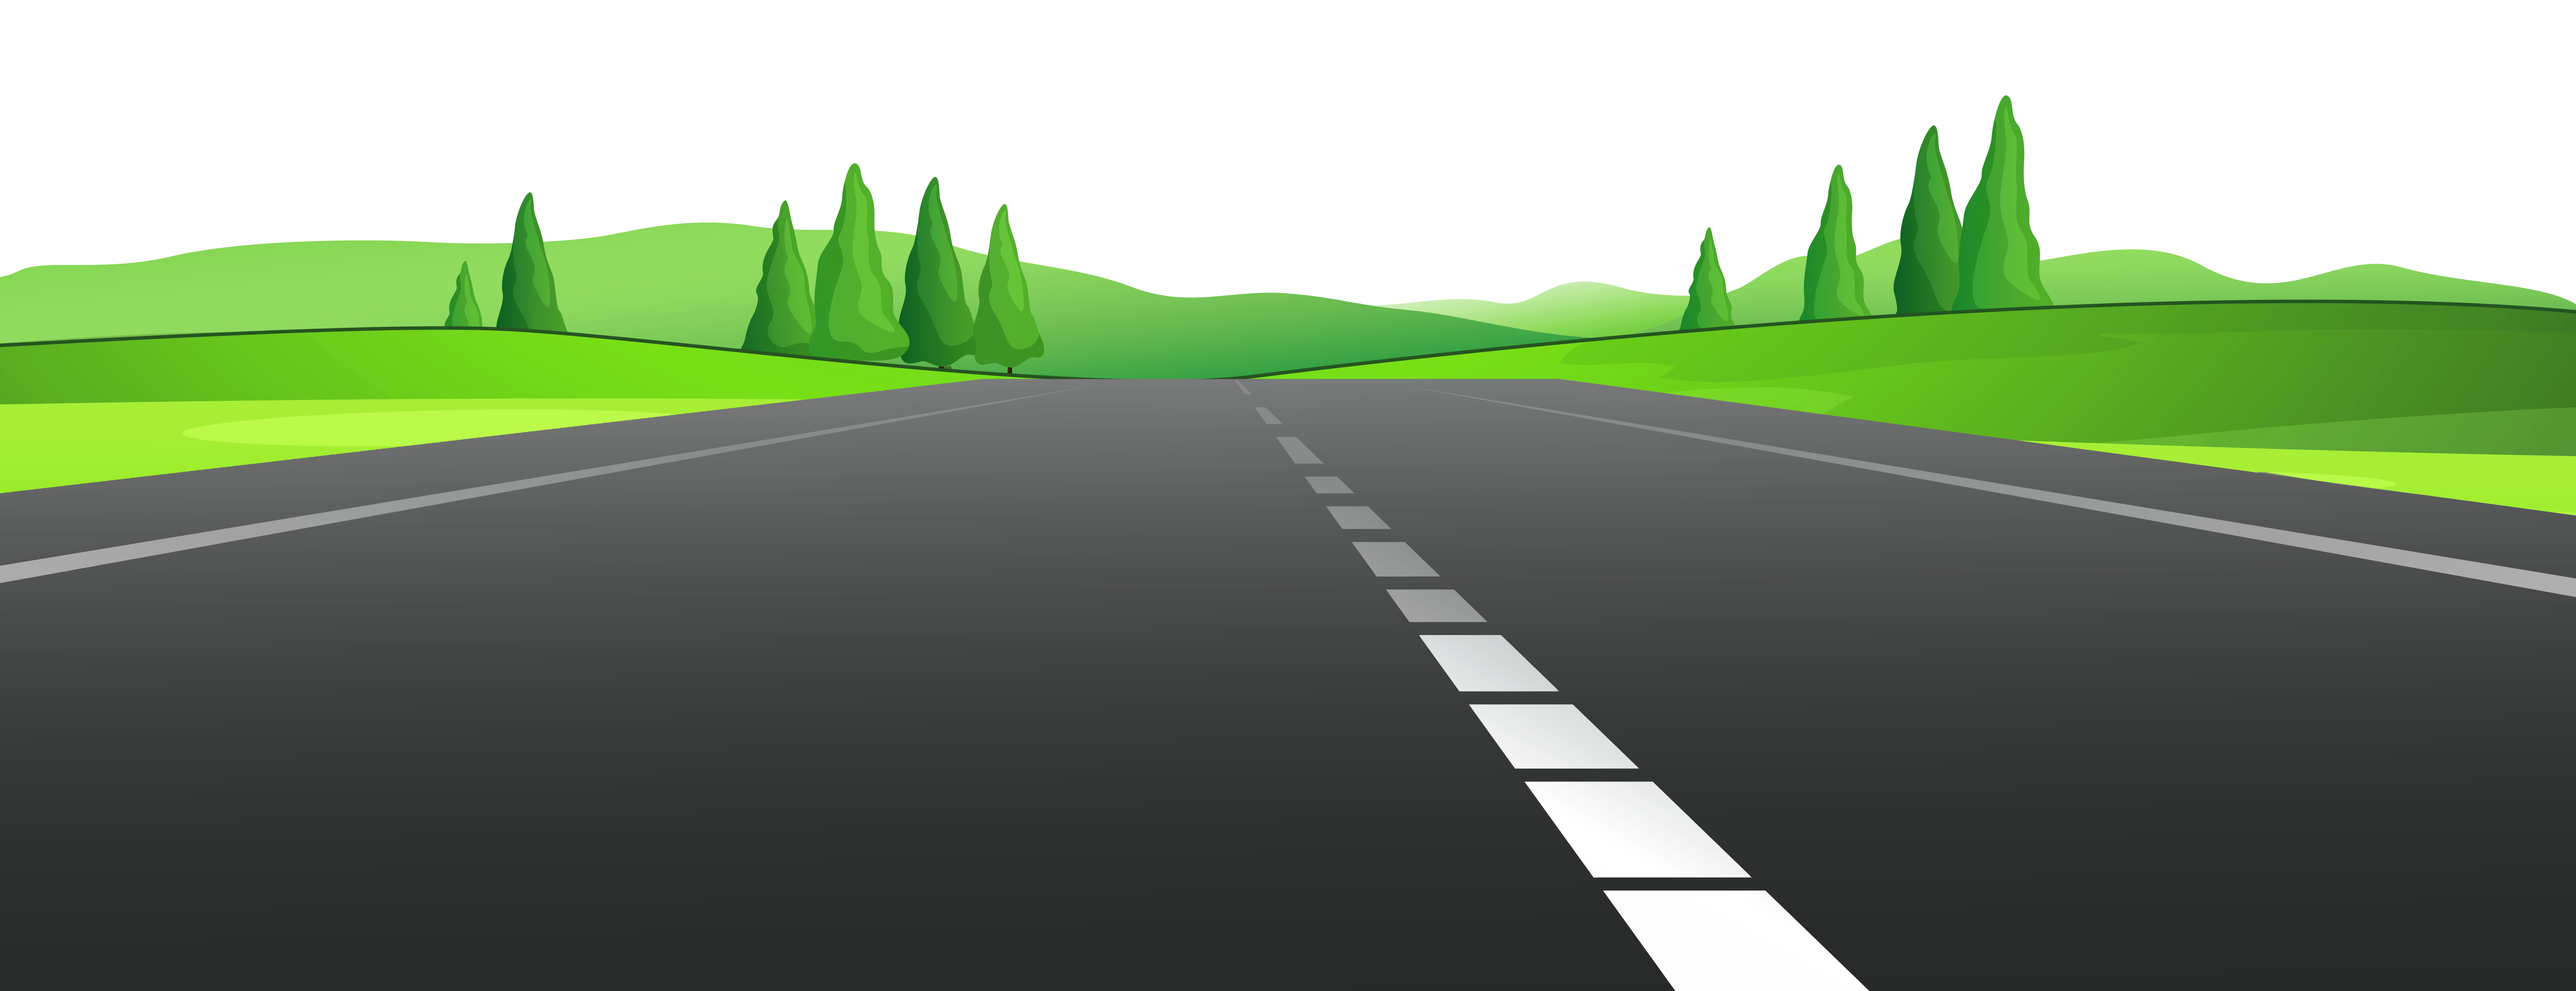 Roadway clipart #1, Download drawings